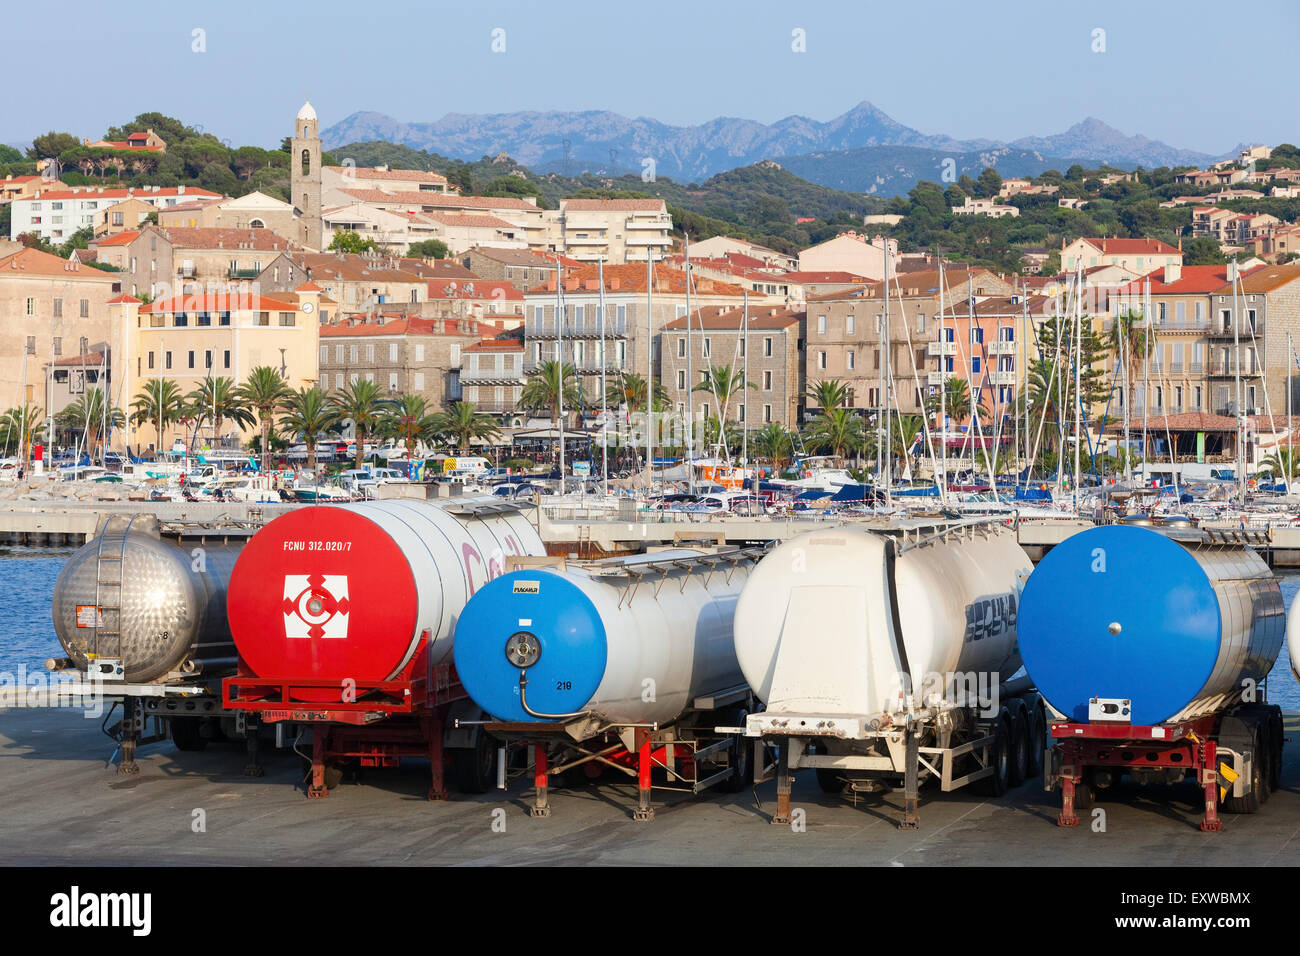 Propriano, France   July 3, 2015: Trailer Tanks Stands In A Row, Propriano  Port, Corsica Island